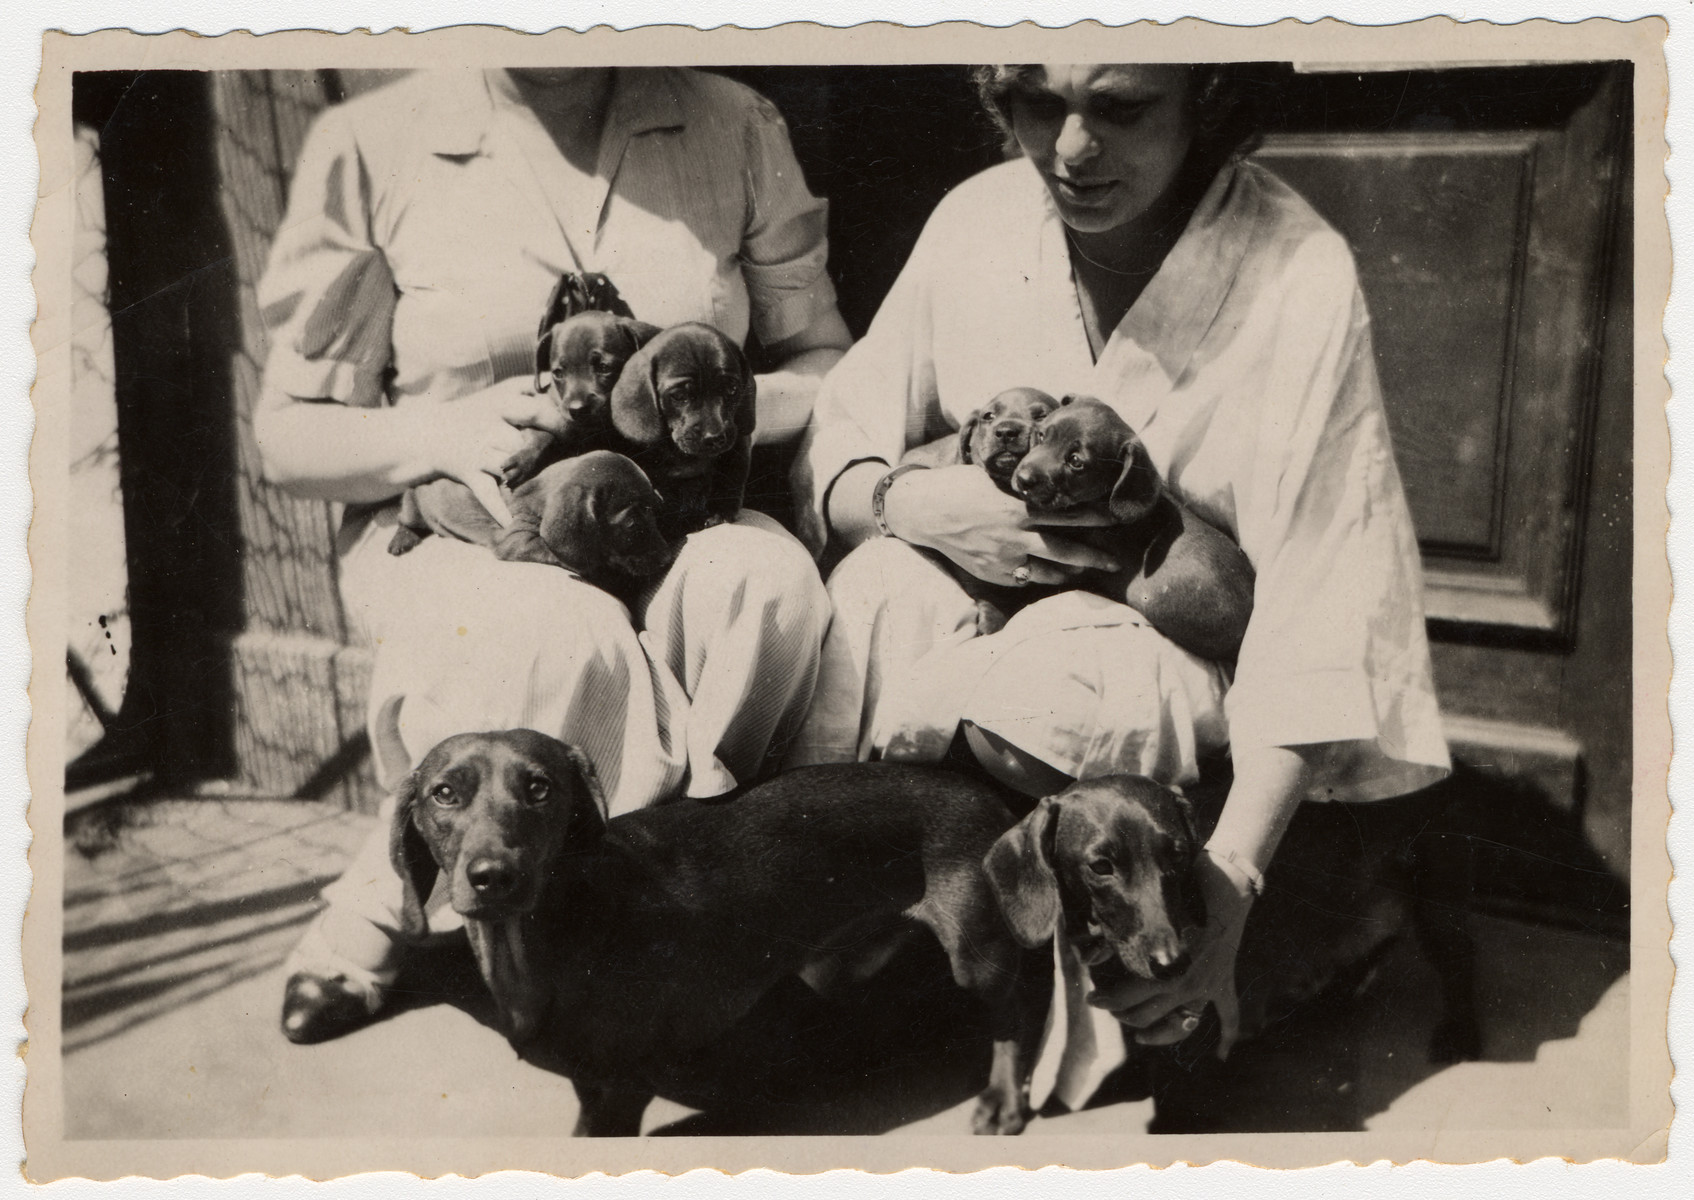 A Jewish woman in Lvov poses with a litter of puppies she is breeding.  Pictured is Lucie Lind Kitz.